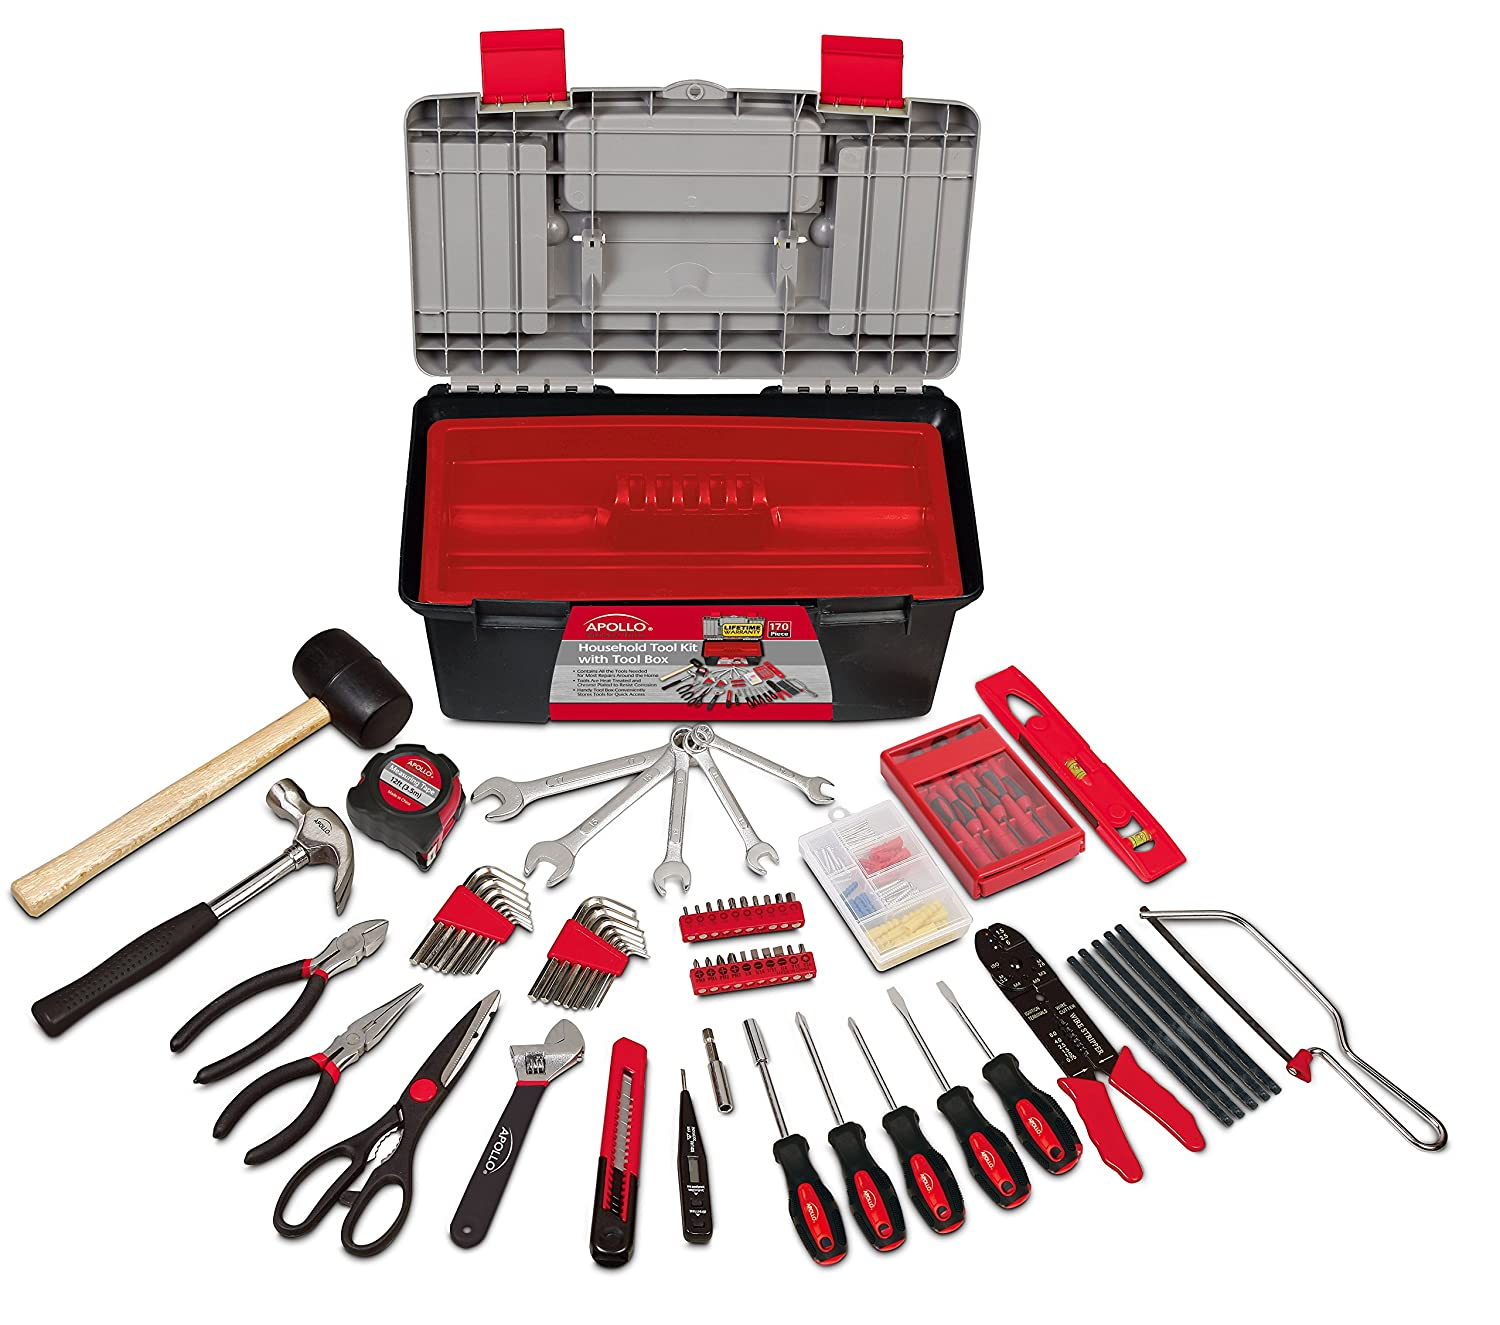 Apollo Precision Tools DT7102 Household Tool Kit with Tool Box, 170 Piece